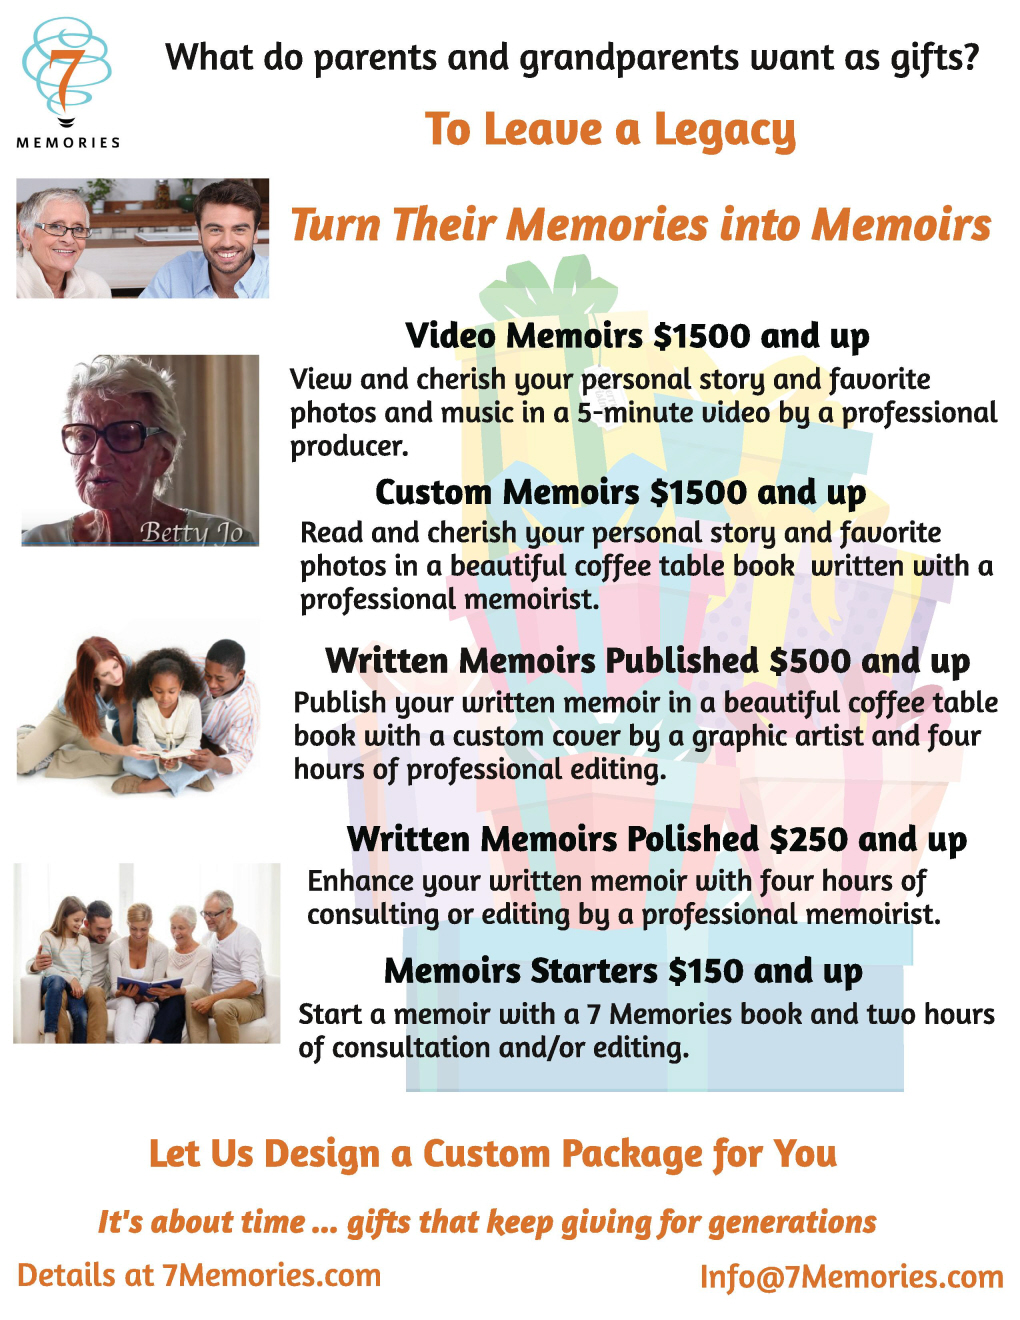 Unique gifts for parents and grandparentsleave a legacy create a legacy that will live forever write it yourself partner with a loved one or let 7 memories do it for you solutioingenieria